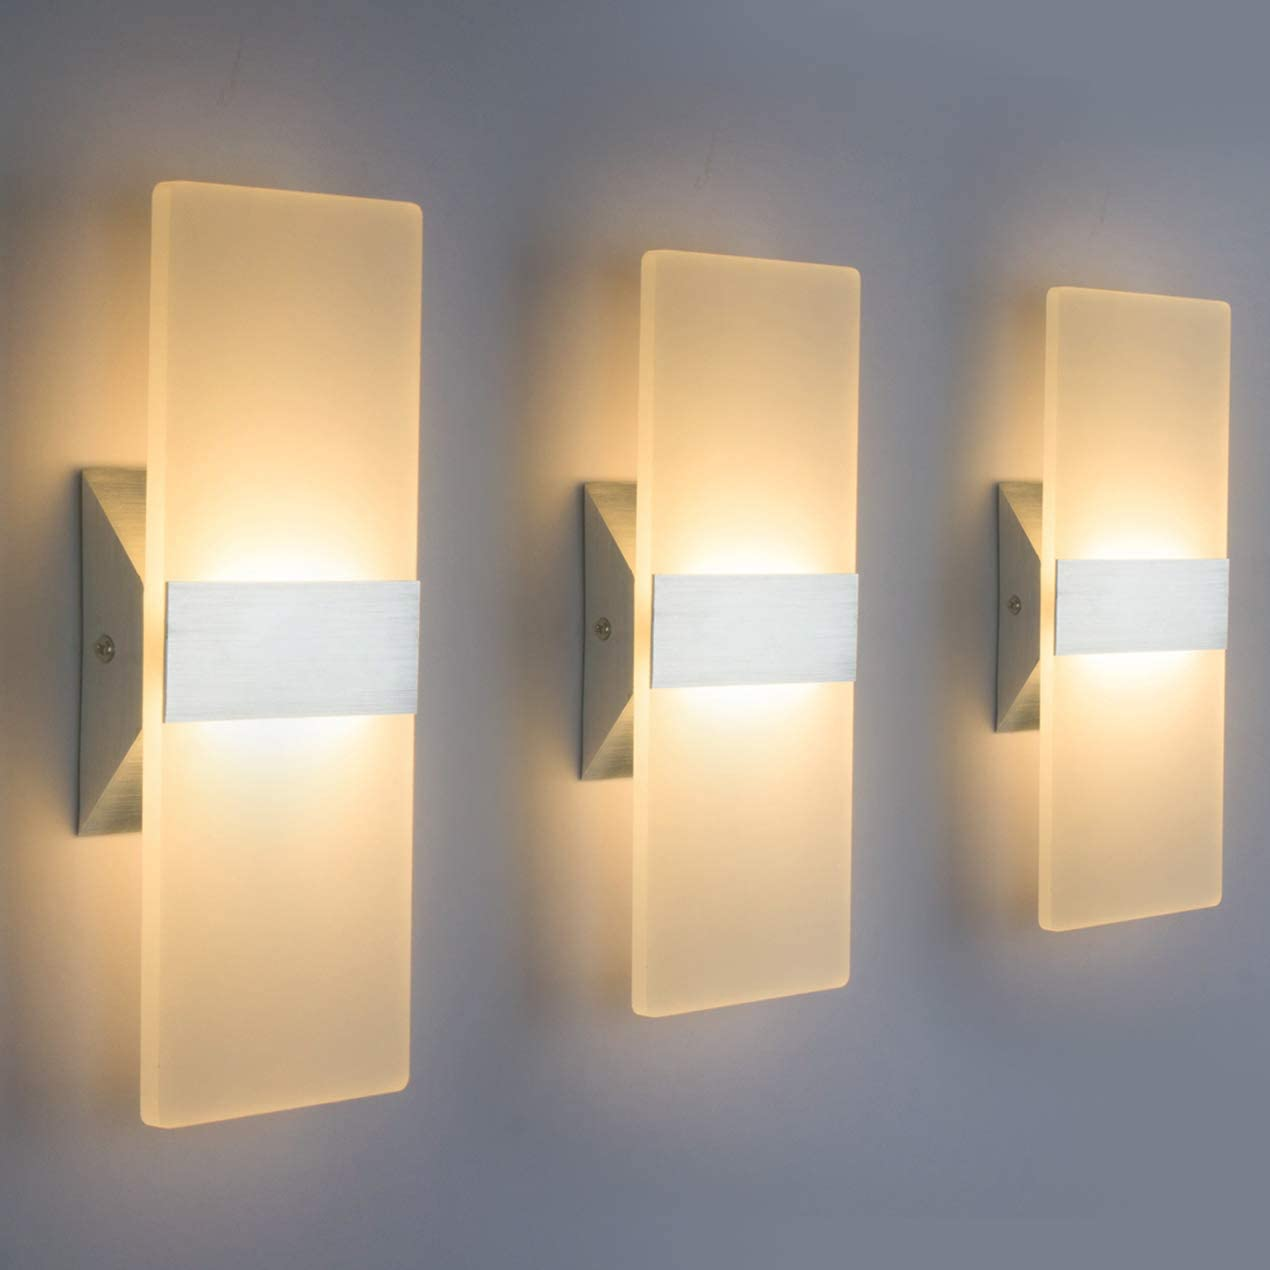 Modern LED Wall Sconce Lighting Fixture Lamps 5W Warm White 5K Up and  Down Indoor Acrylic Wall Lights Not Dimmable for Living Room Bedroom  Hallway